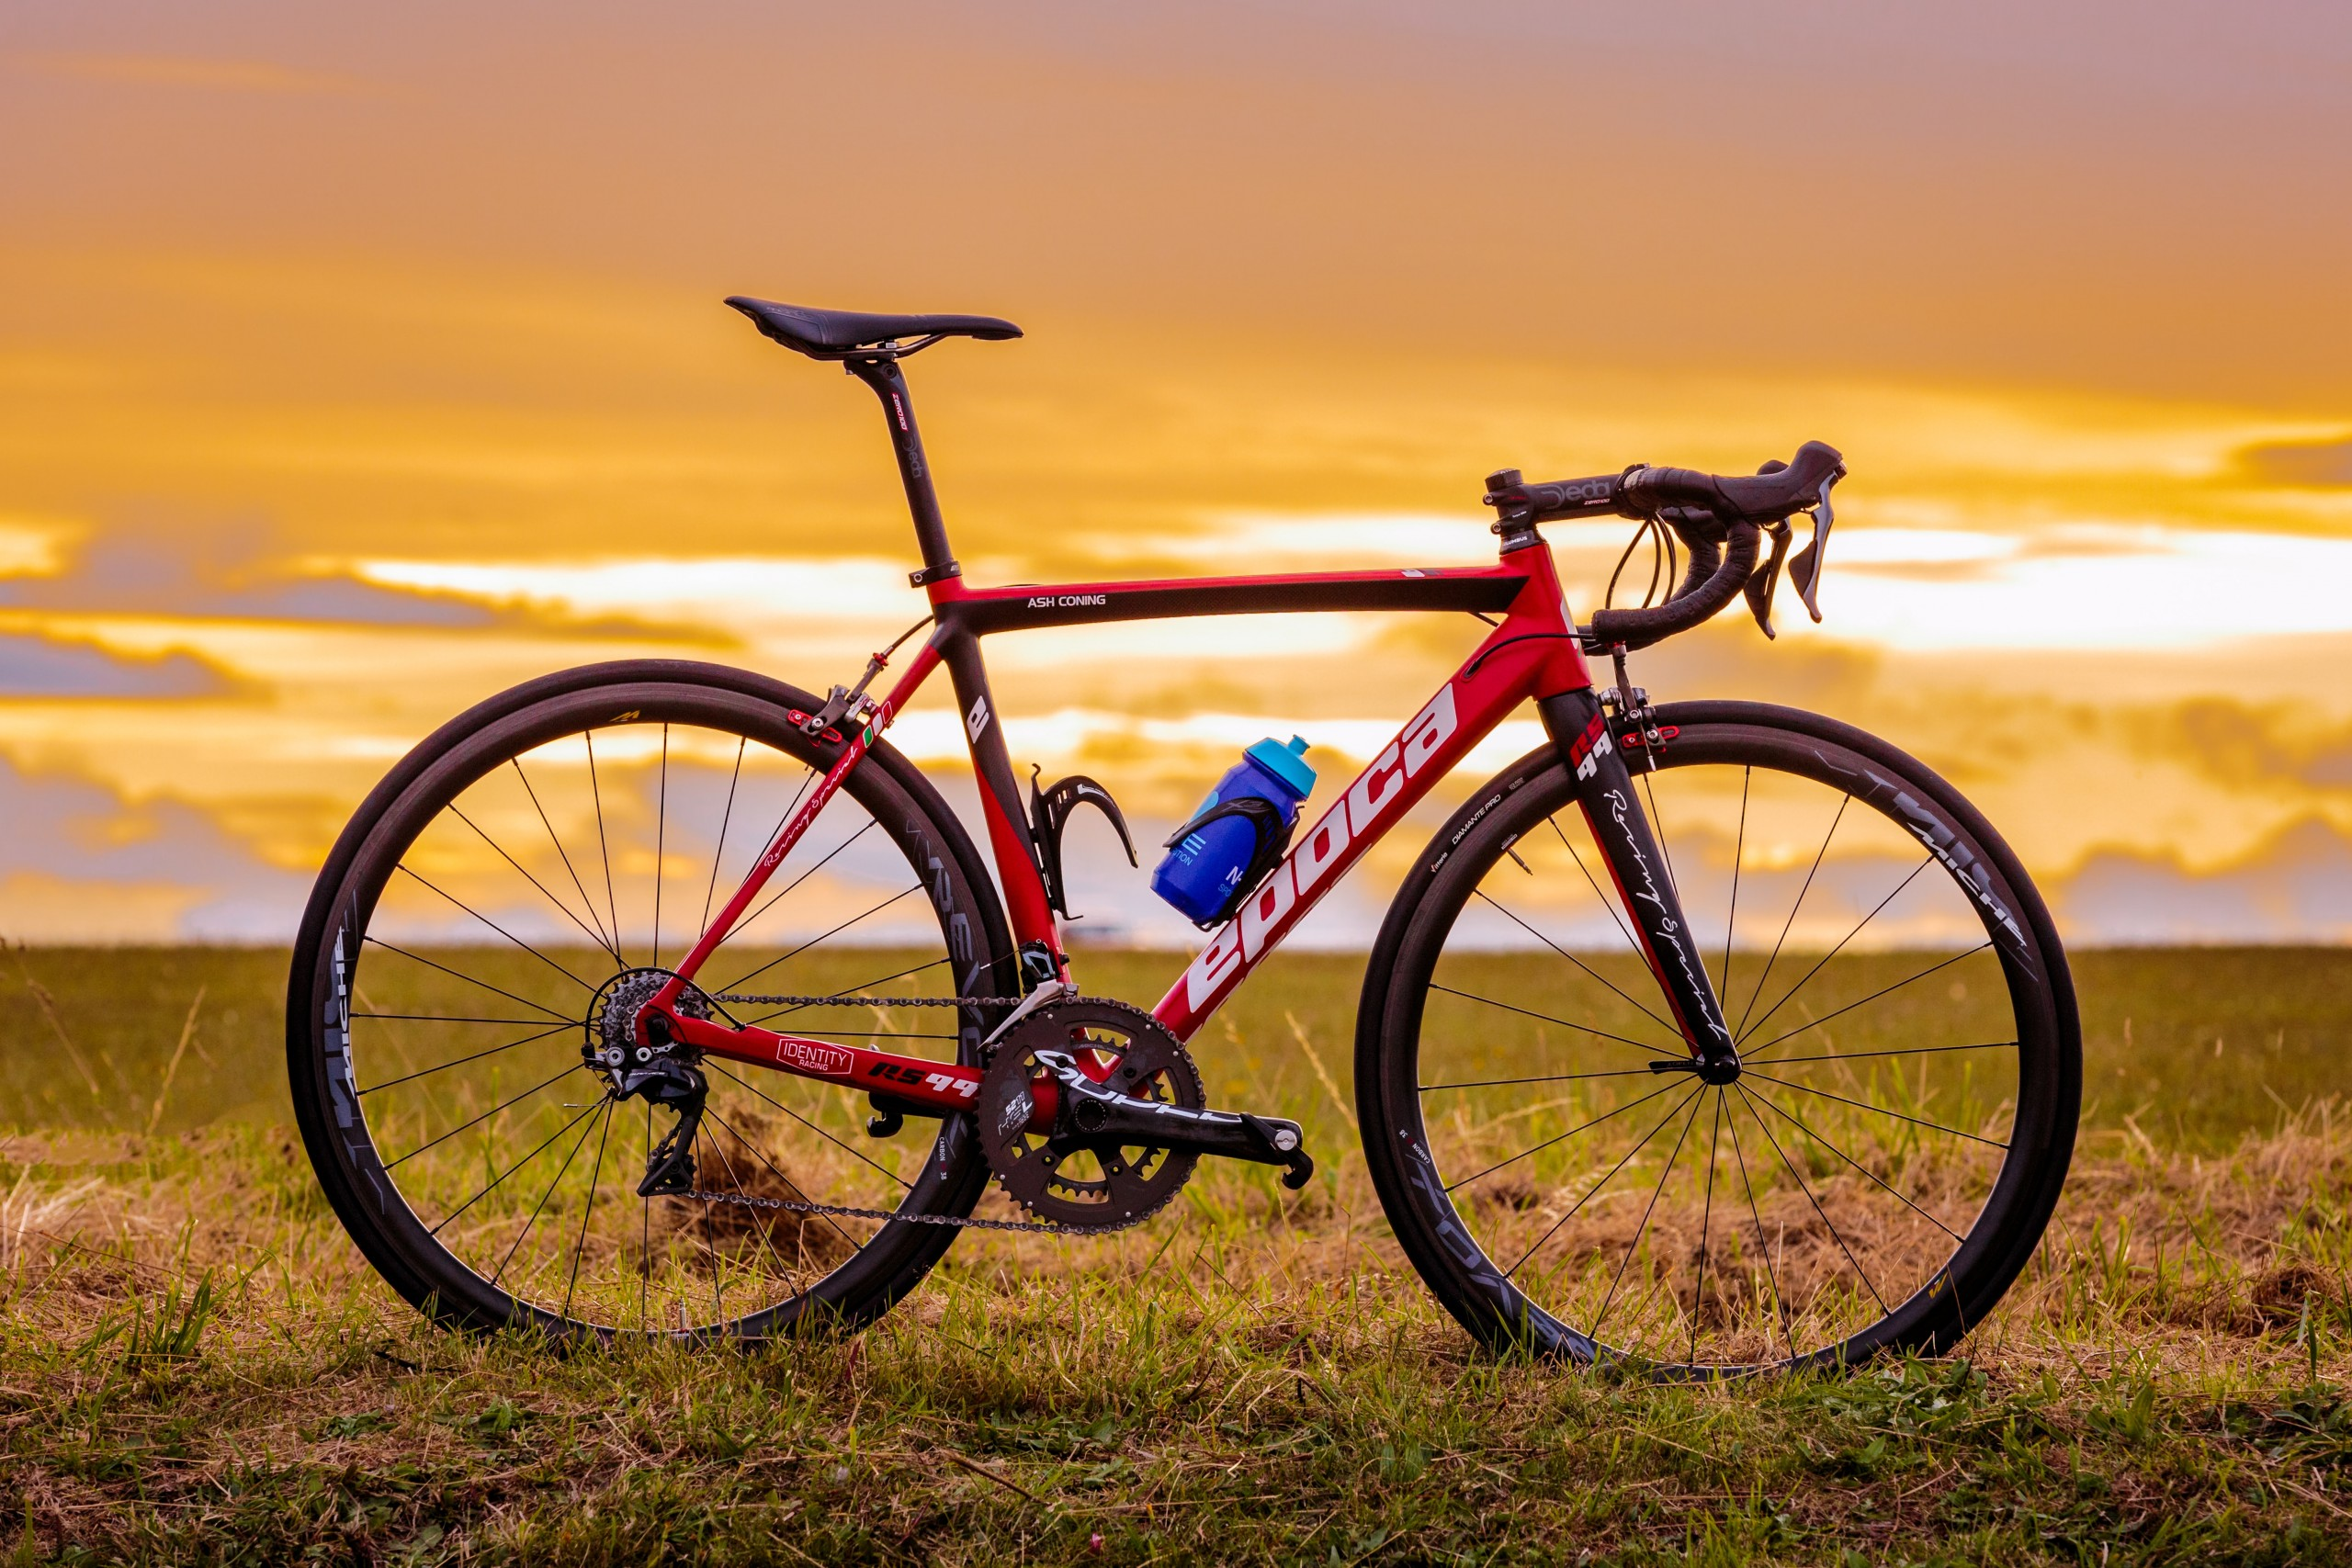 Bike on grass. Sunrise.